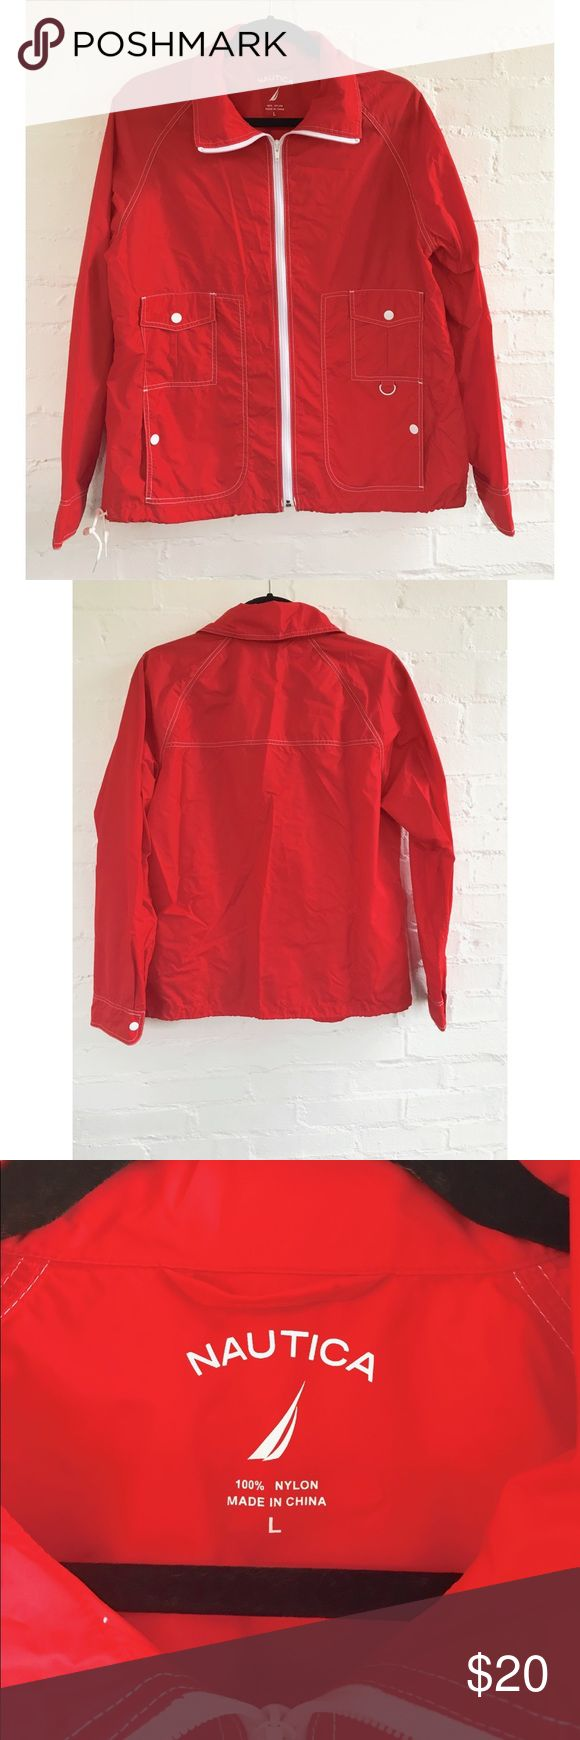 NWOT Nautica Windbreker Cherry red Nautica woman's windbreaker! New without tags — never worn—great condition. Lightweight and the color can't be beat. Chest: 22in Length: 25in Nautica Jackets & Coats